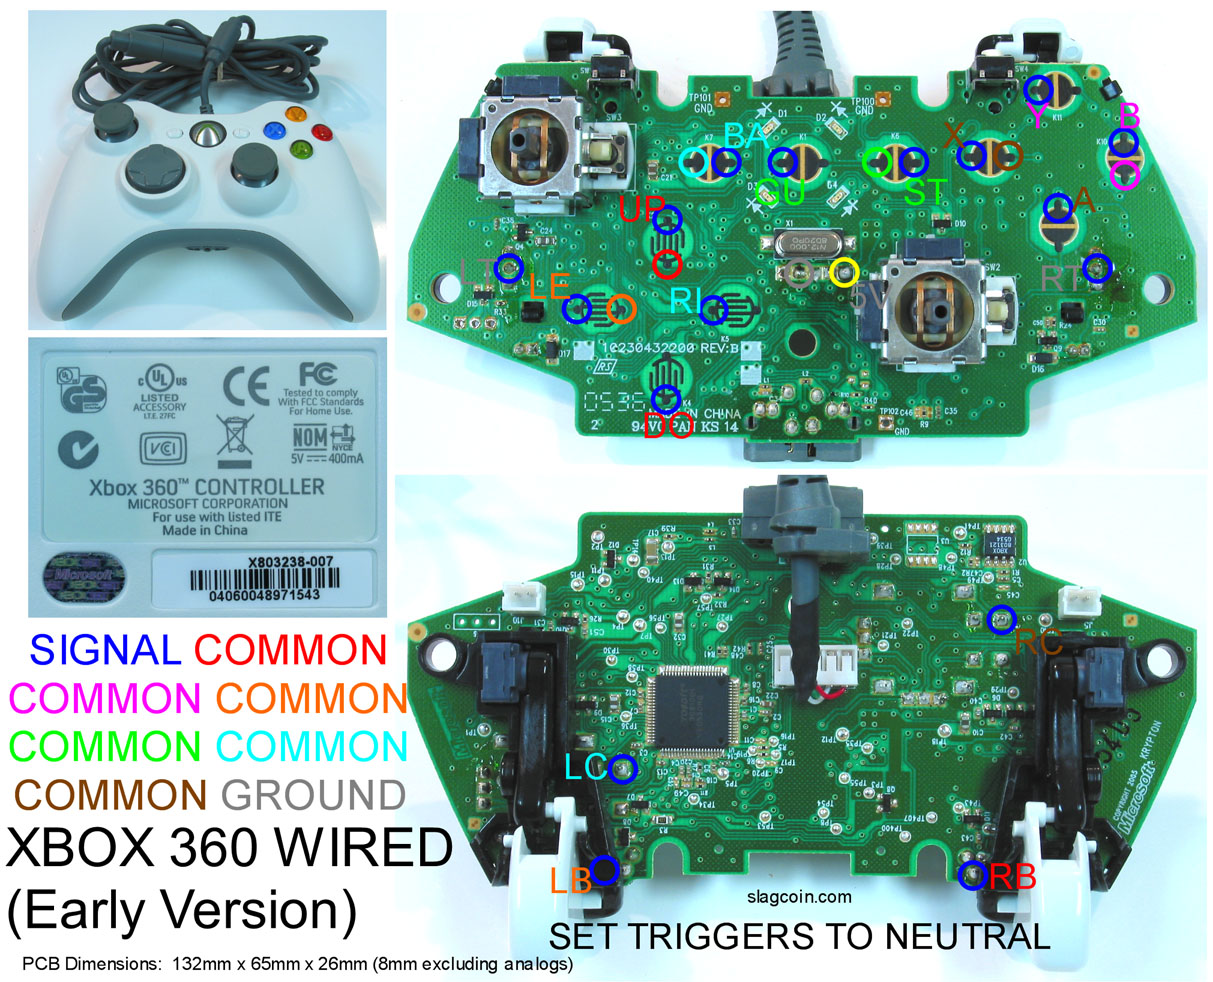 gaming, gadgets, and mods xbox 360 and original xbox controller pcb xbox 360 headset wire diagram gaming, gadgets, and mods